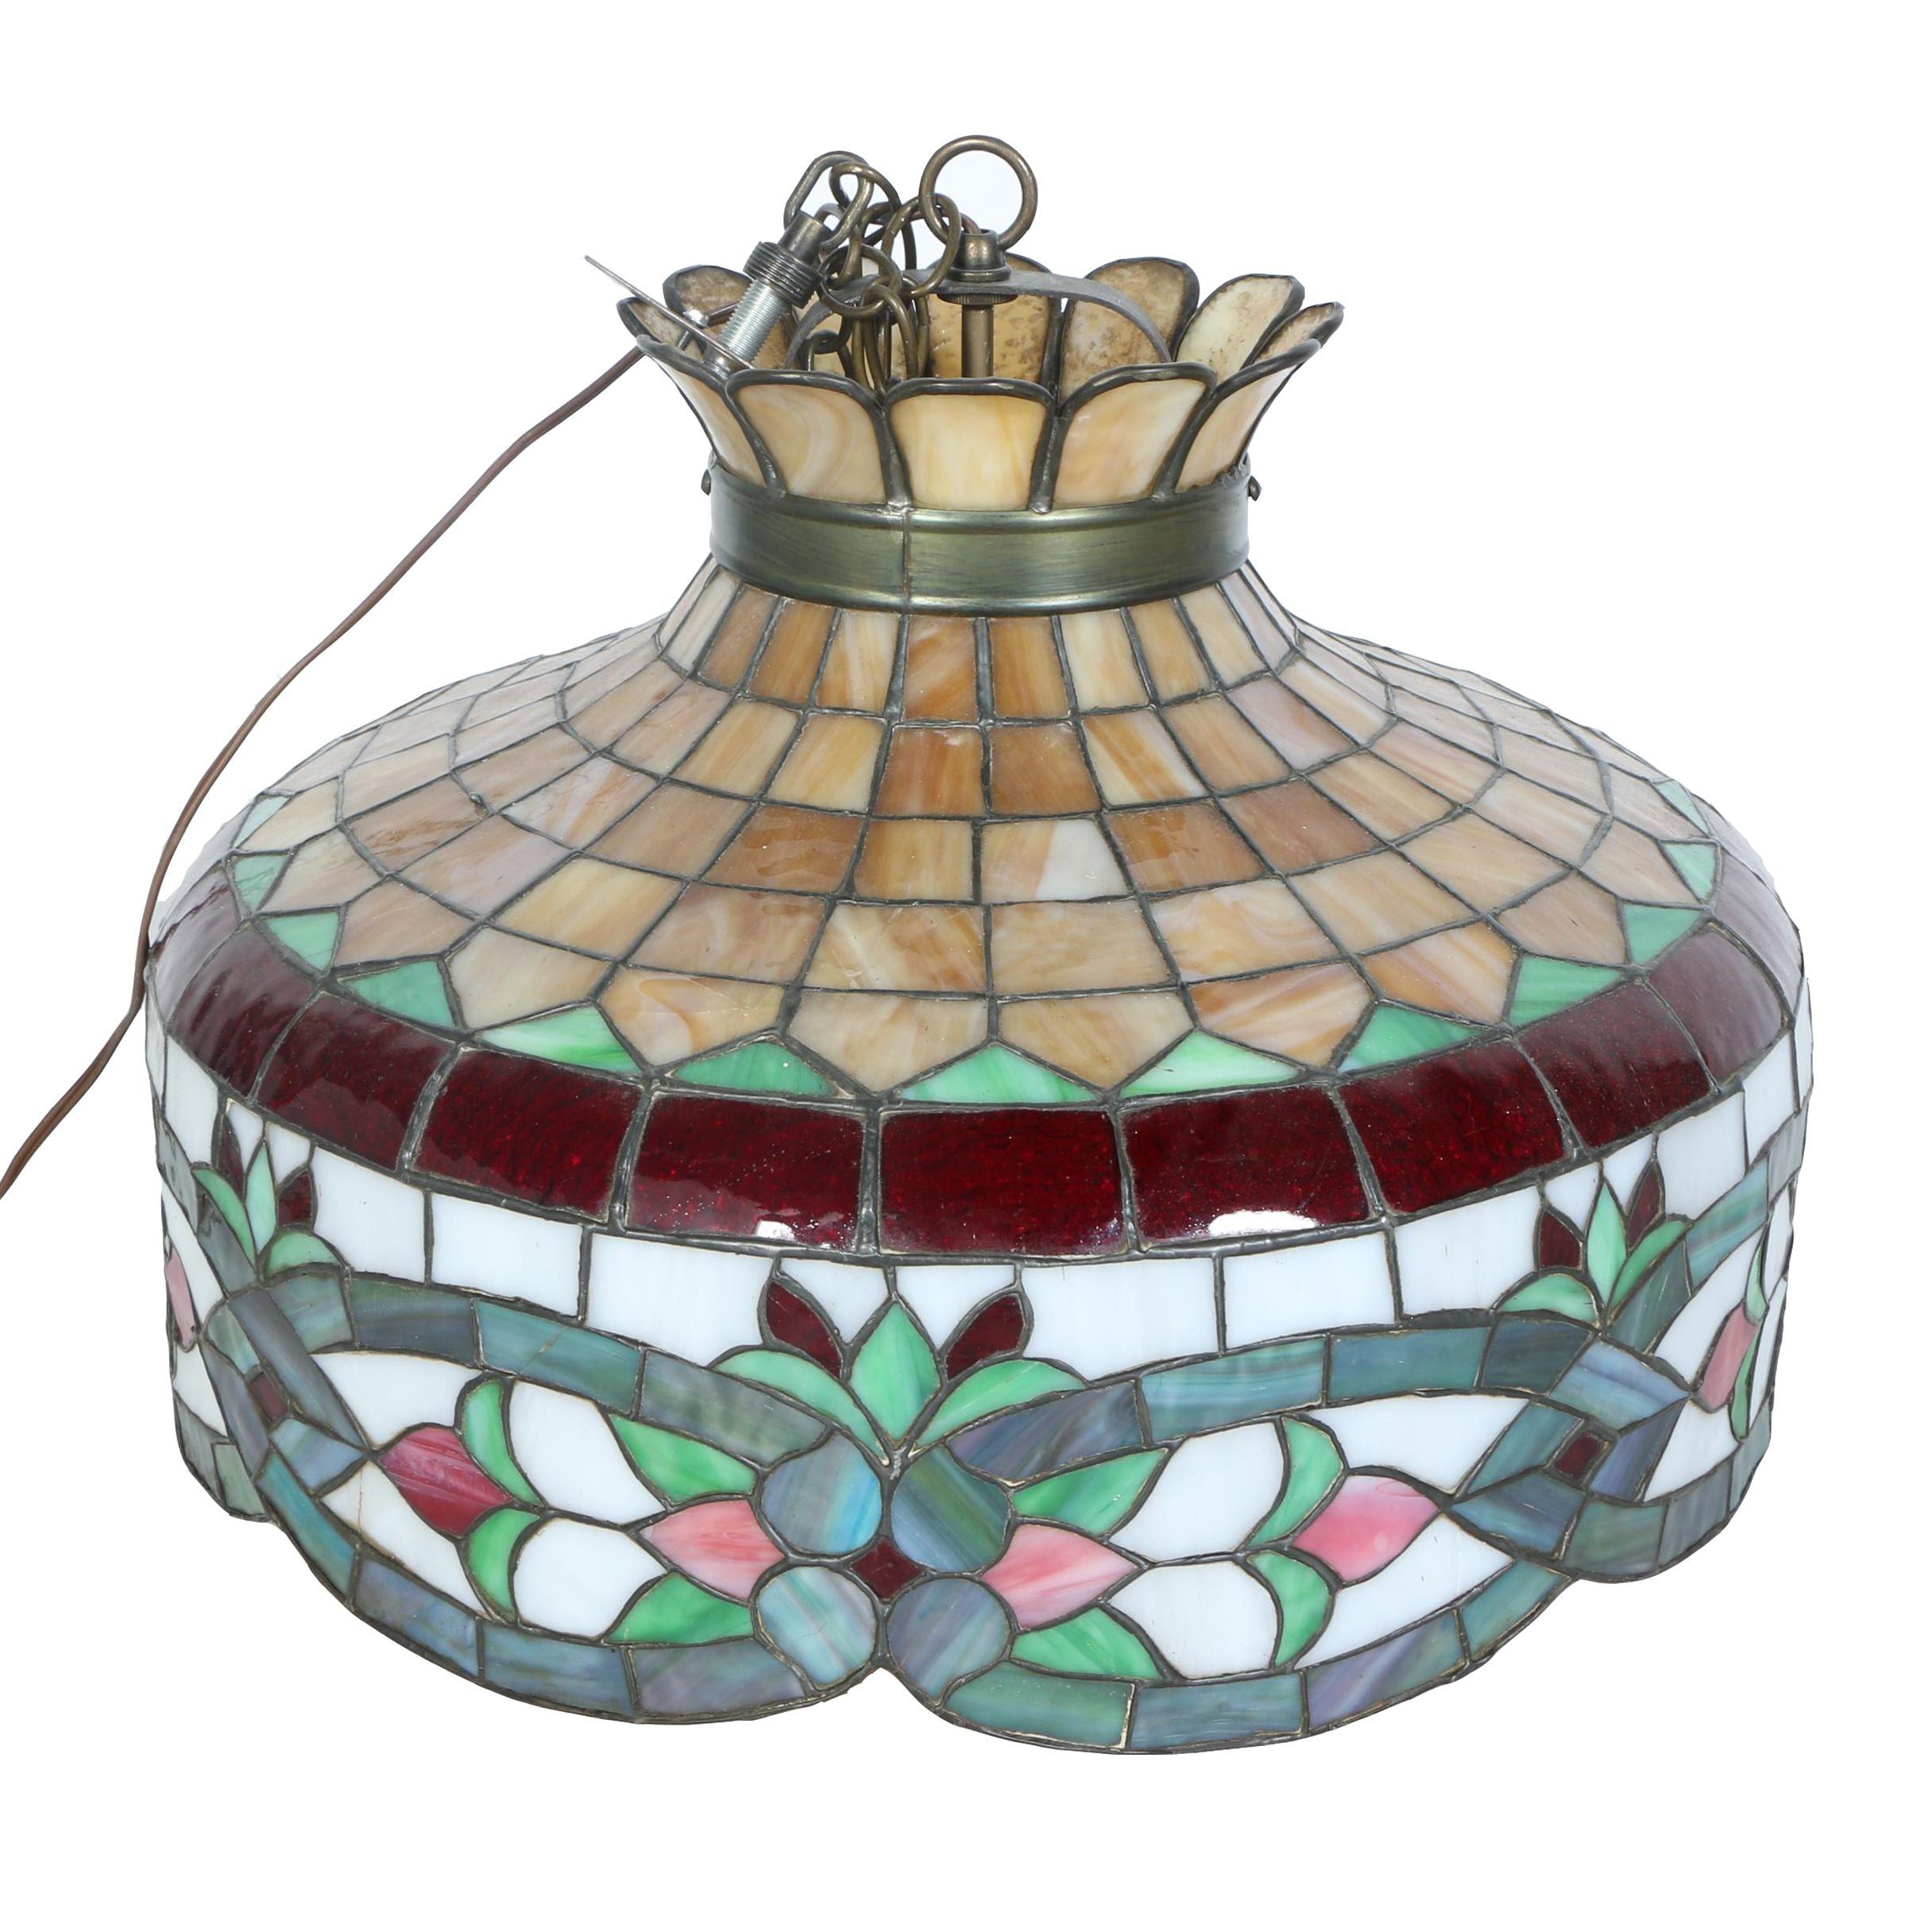 Hanging Stained Glass Chandelier